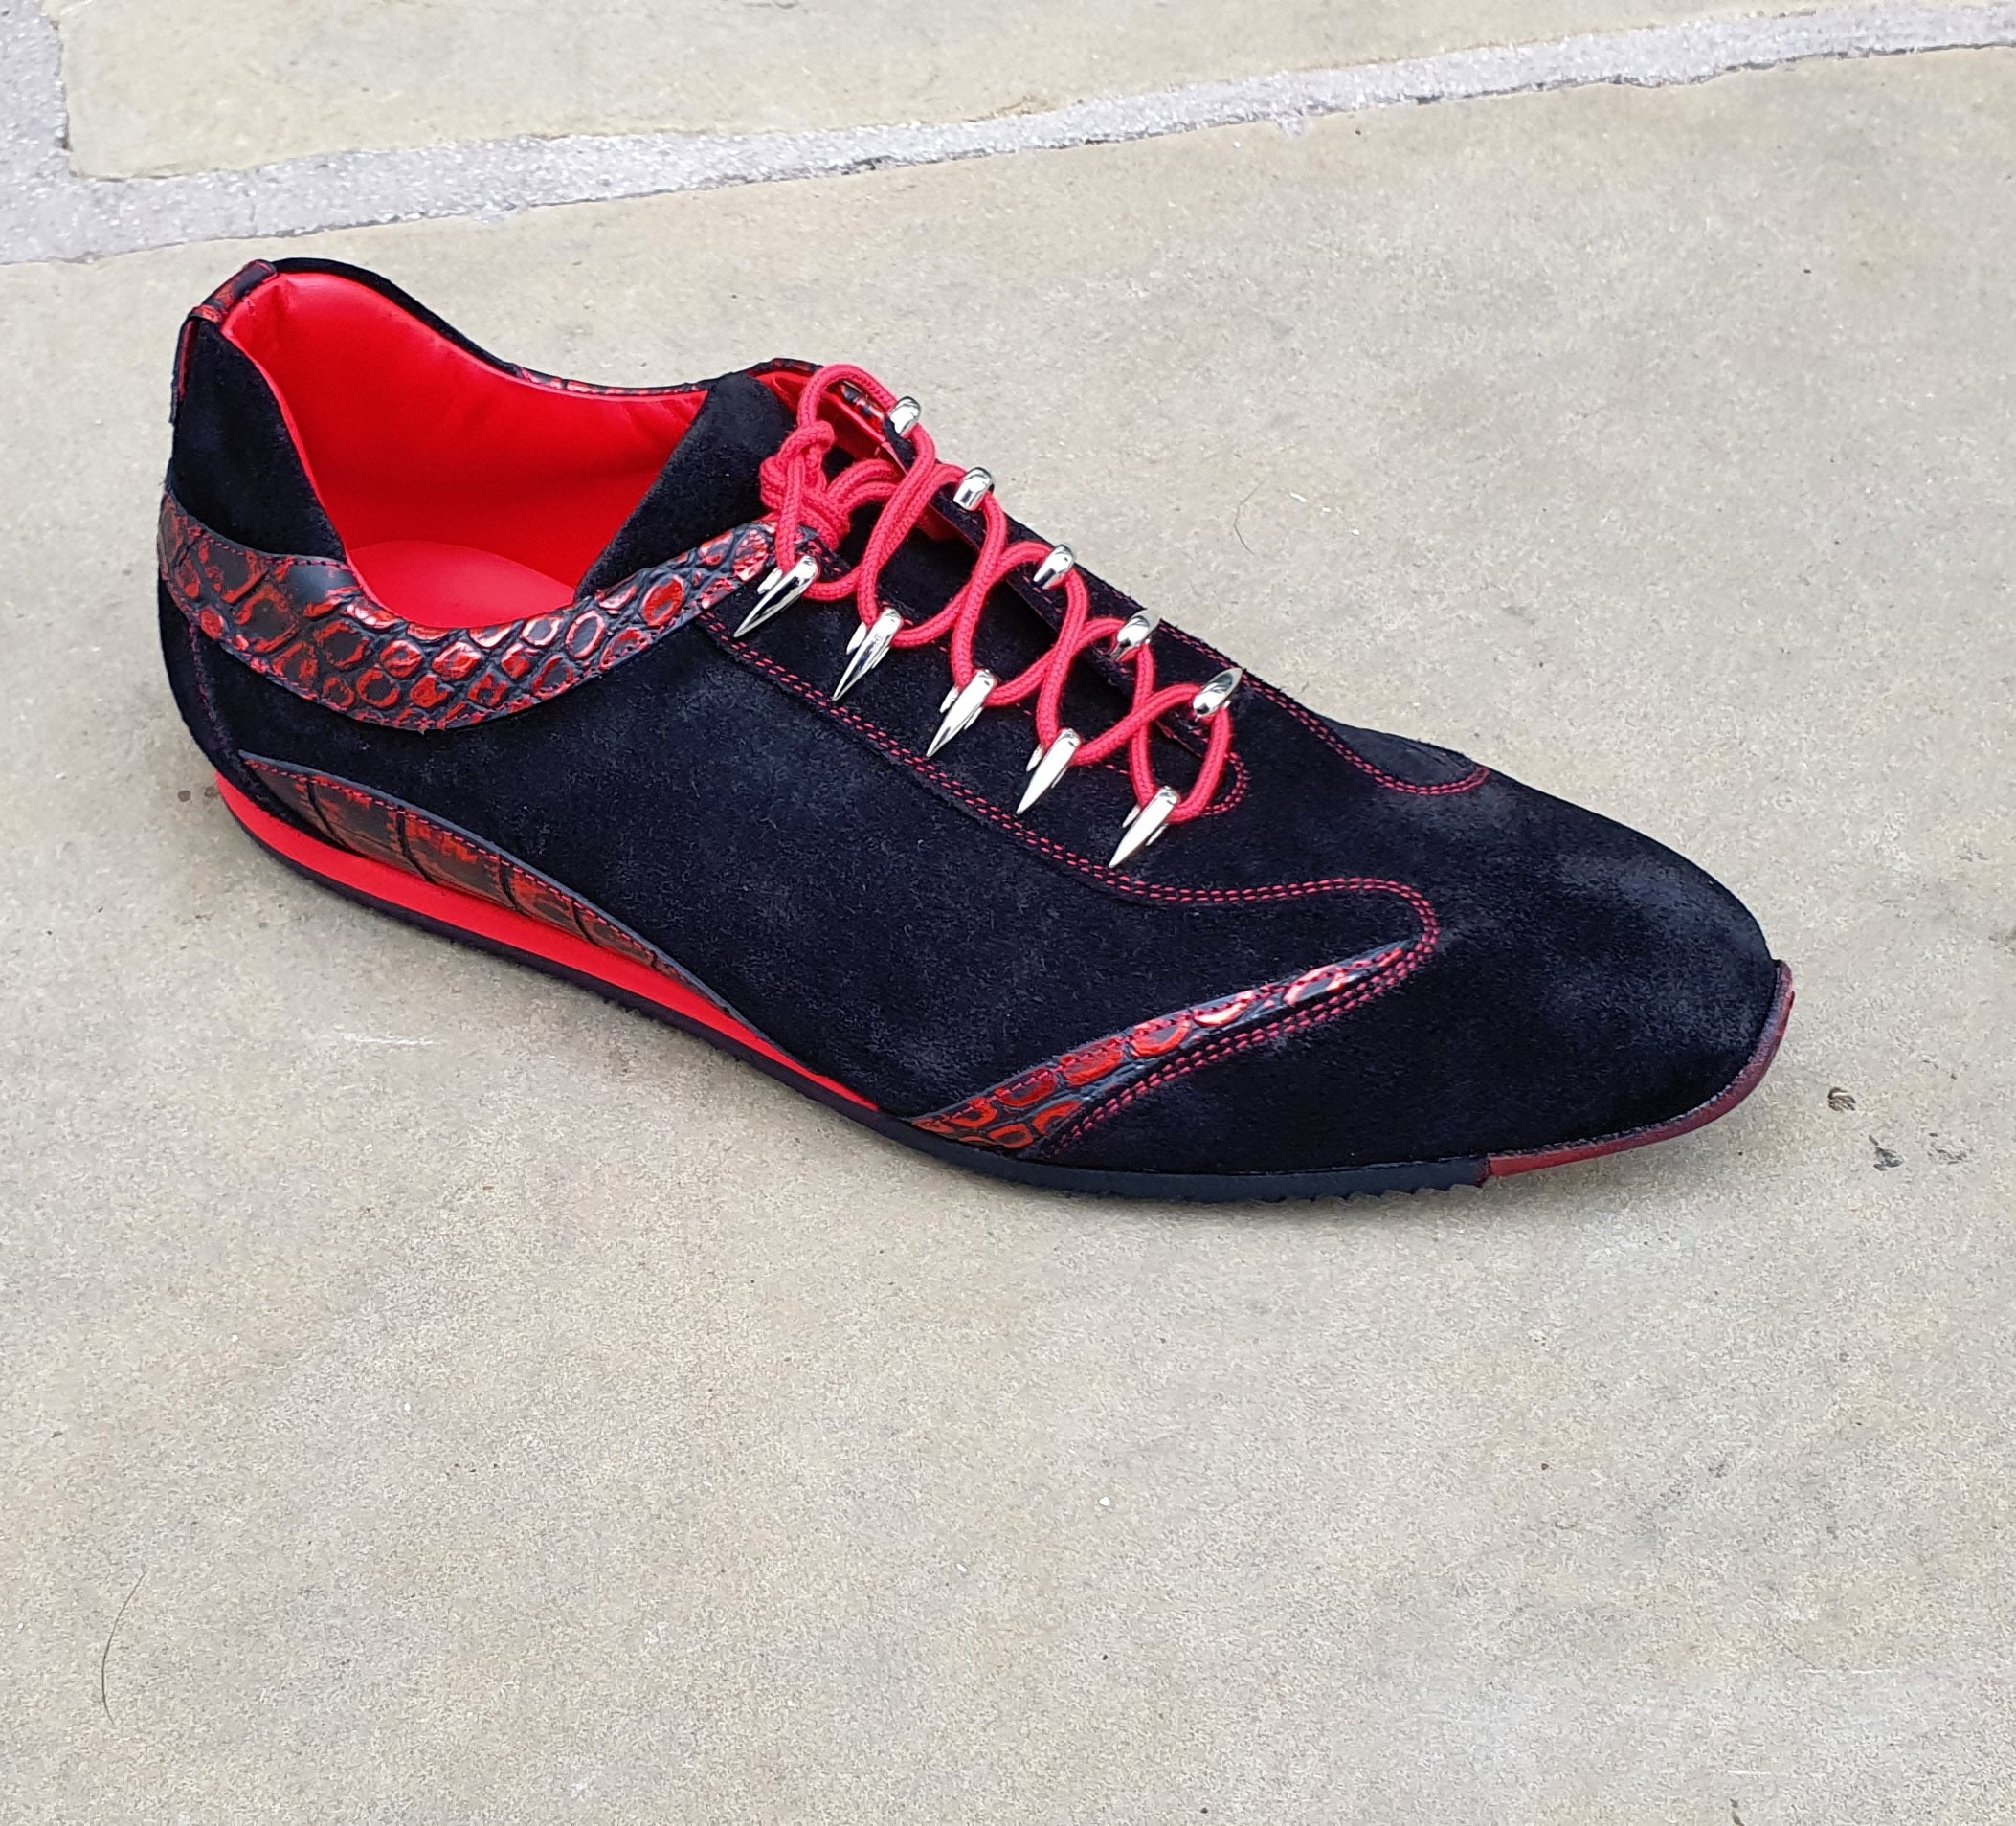 Silverstone Black Mirror Red Sneaker